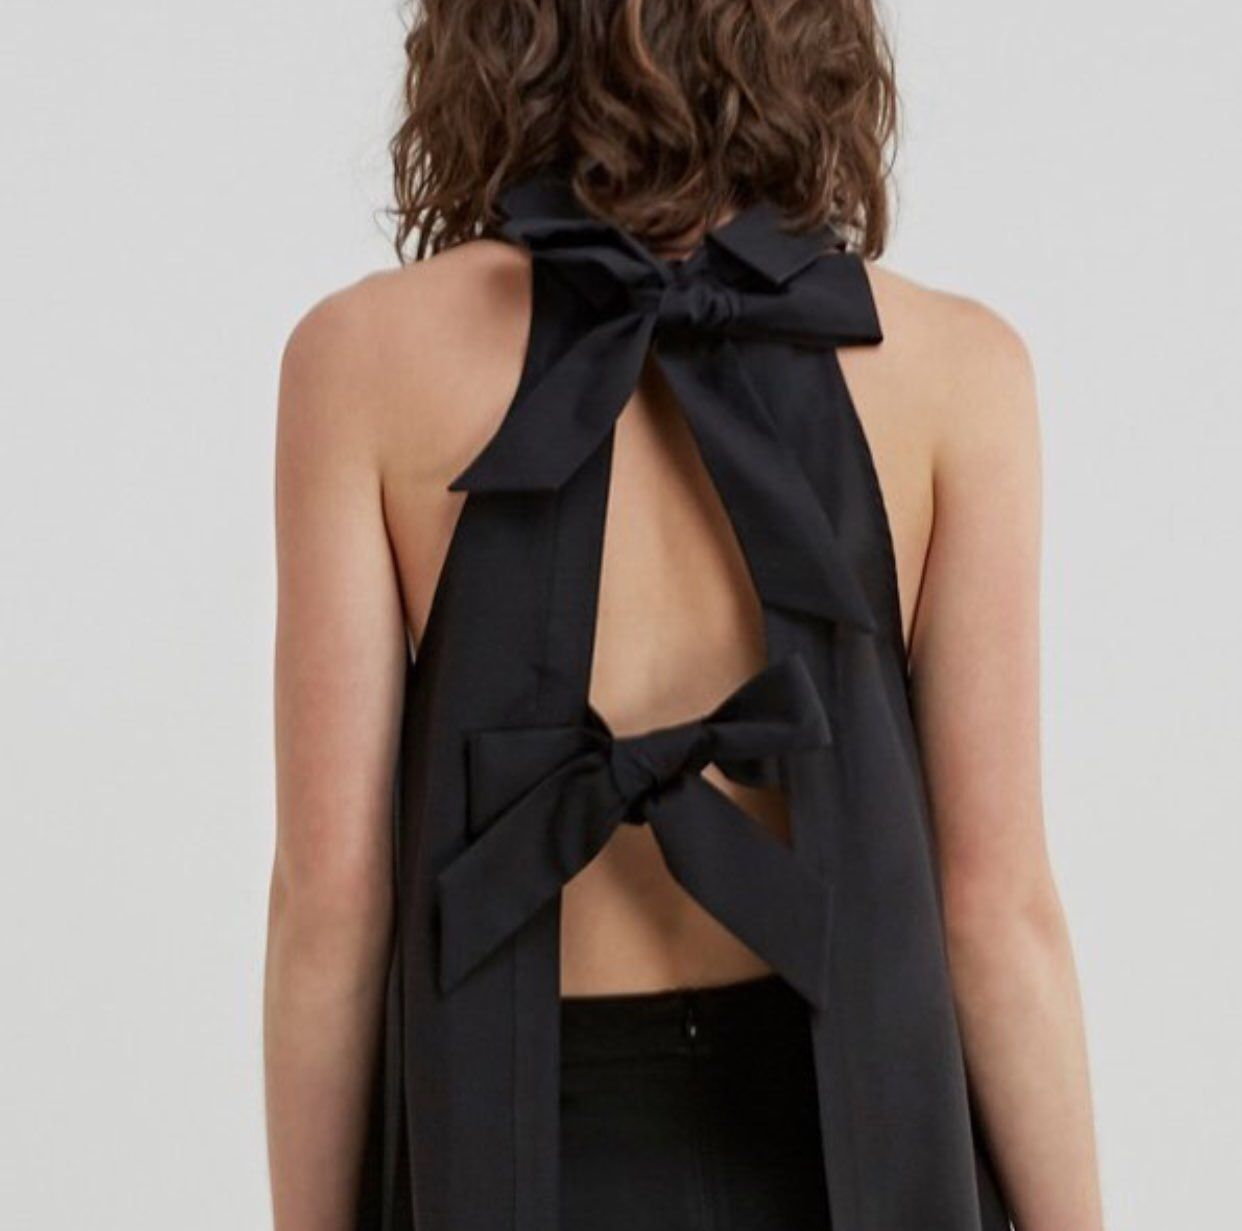 o something a little unexpected and wear this! The classy black bows makes it so elegant but fresh.  STRING ALONG SHIRTING TOP  http://bit.ly/2opQkQG